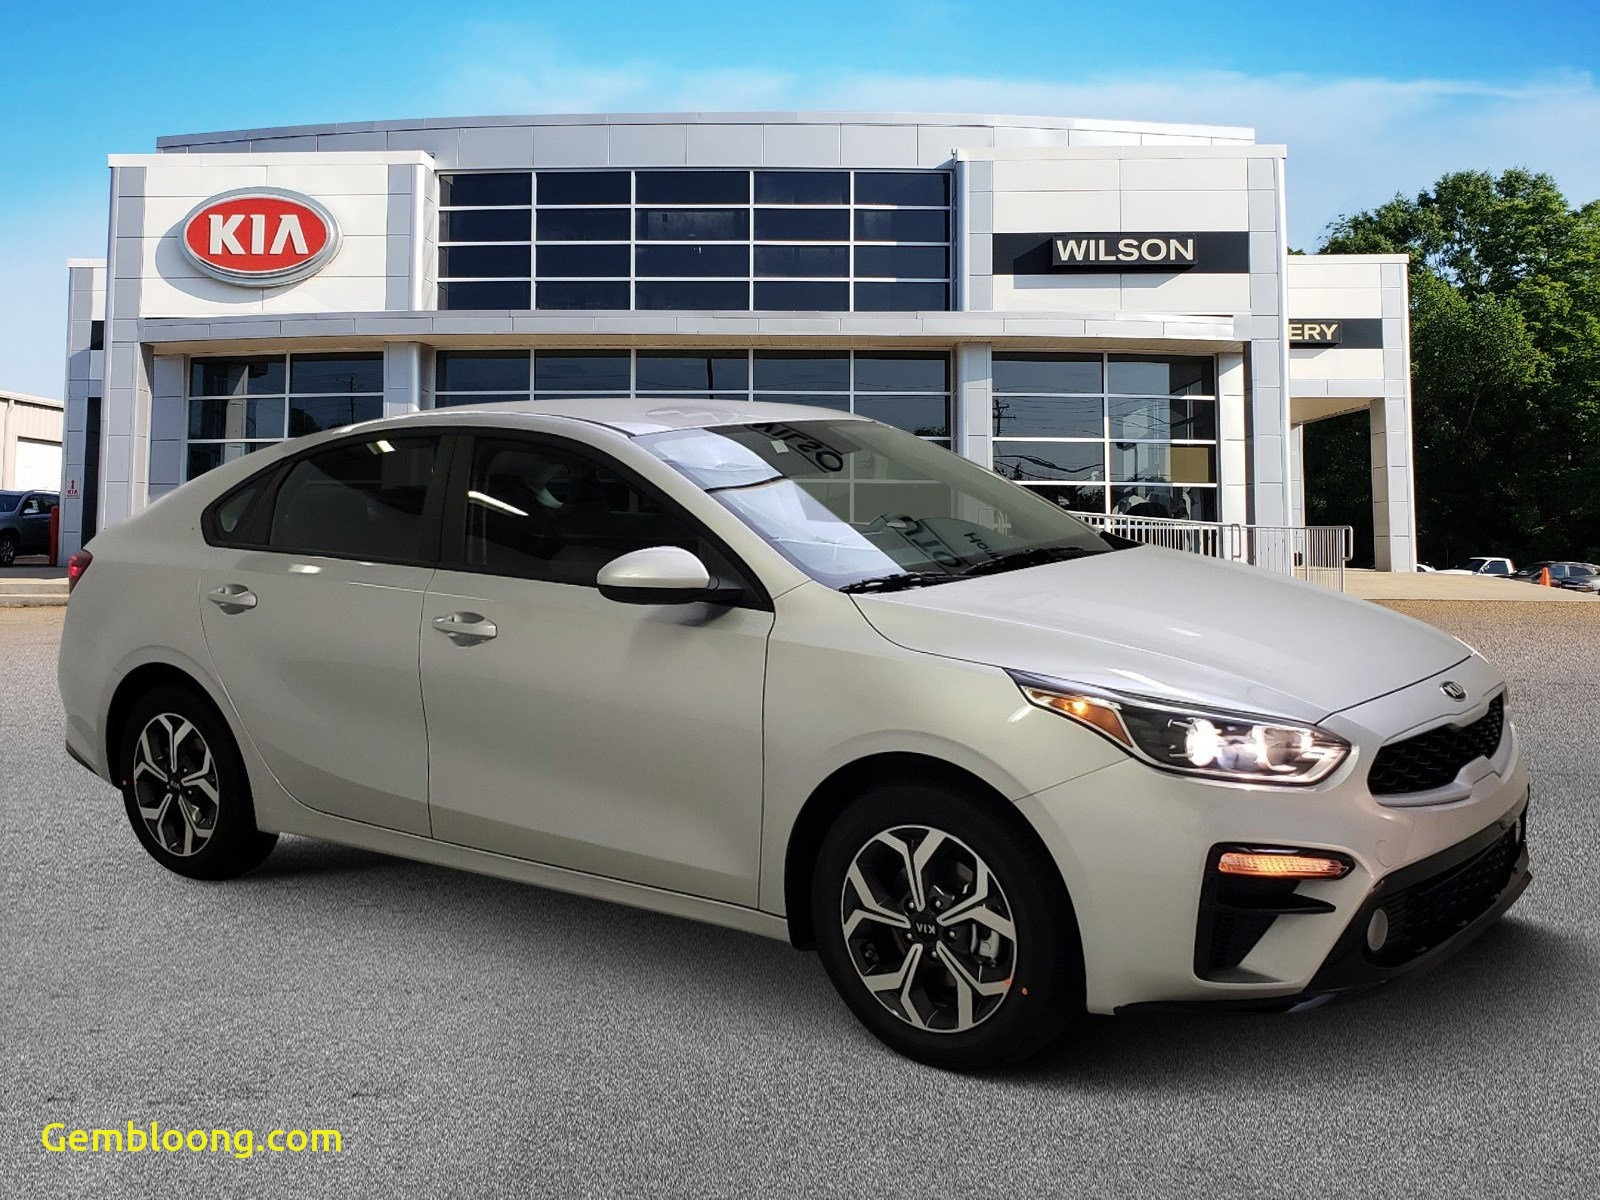 Cars for Sale Under 10000 In Jackson Ms Awesome New 2019 Kia forte Lxs Fwd 4dr Car